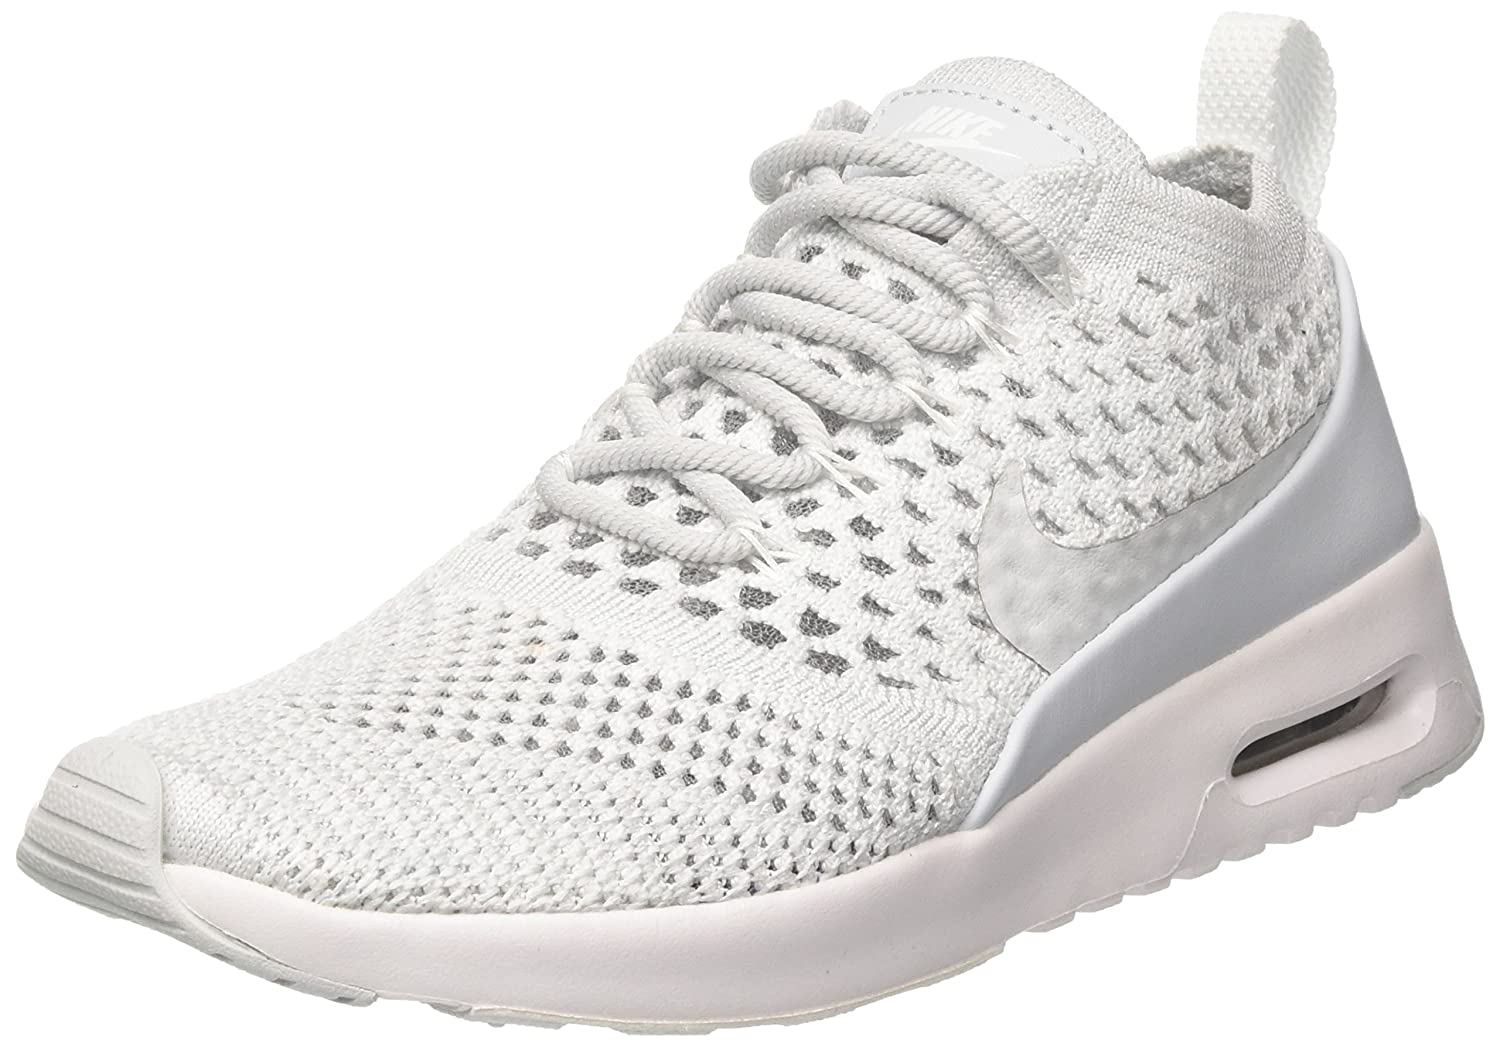 Shop Cheap Nike UK OnlineNike Air Max Thea Trainer Pure